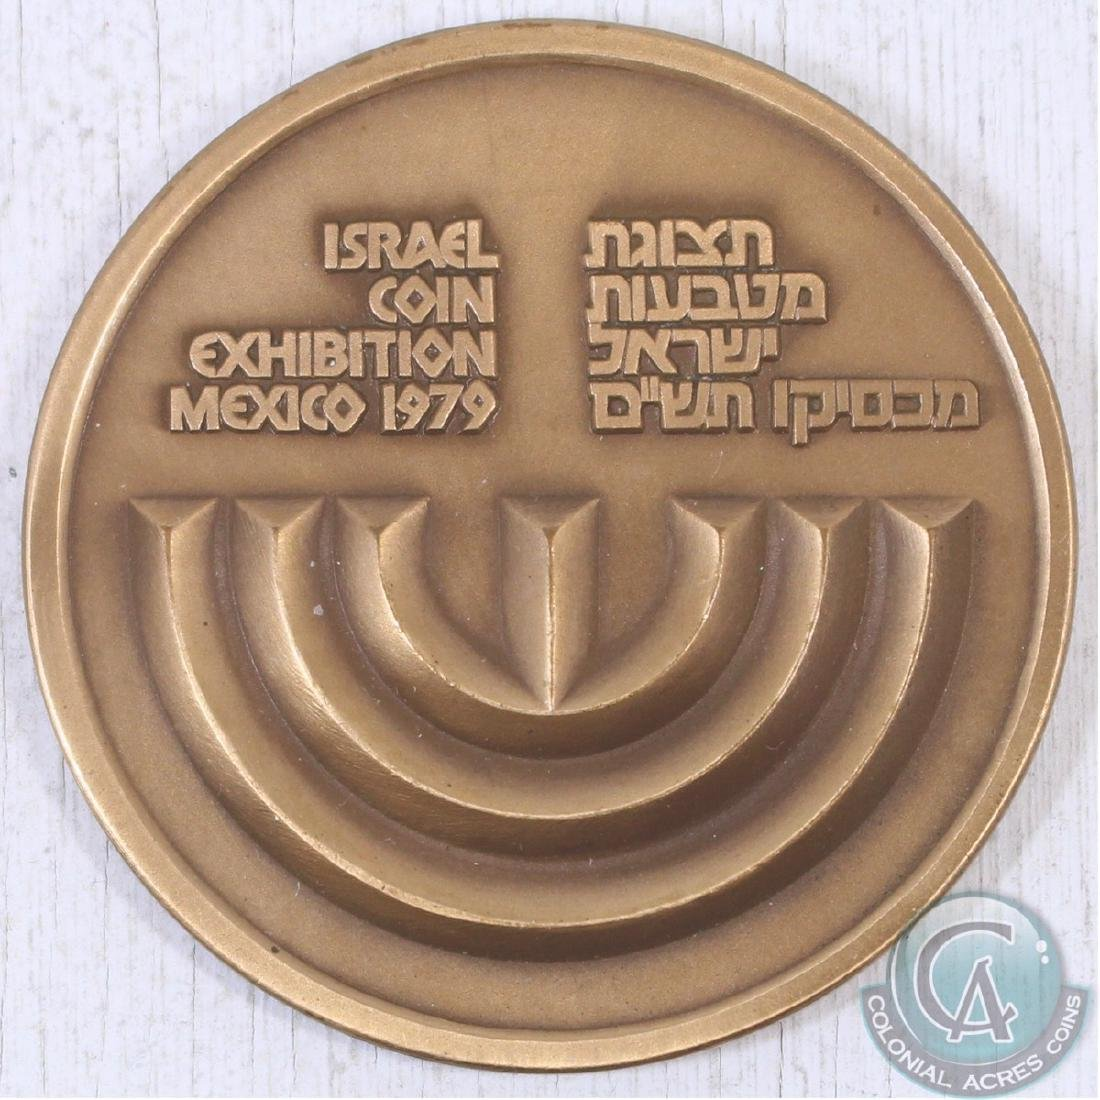 Israel Coin Exhibition Mexico 1979 Medallion (59 mm in